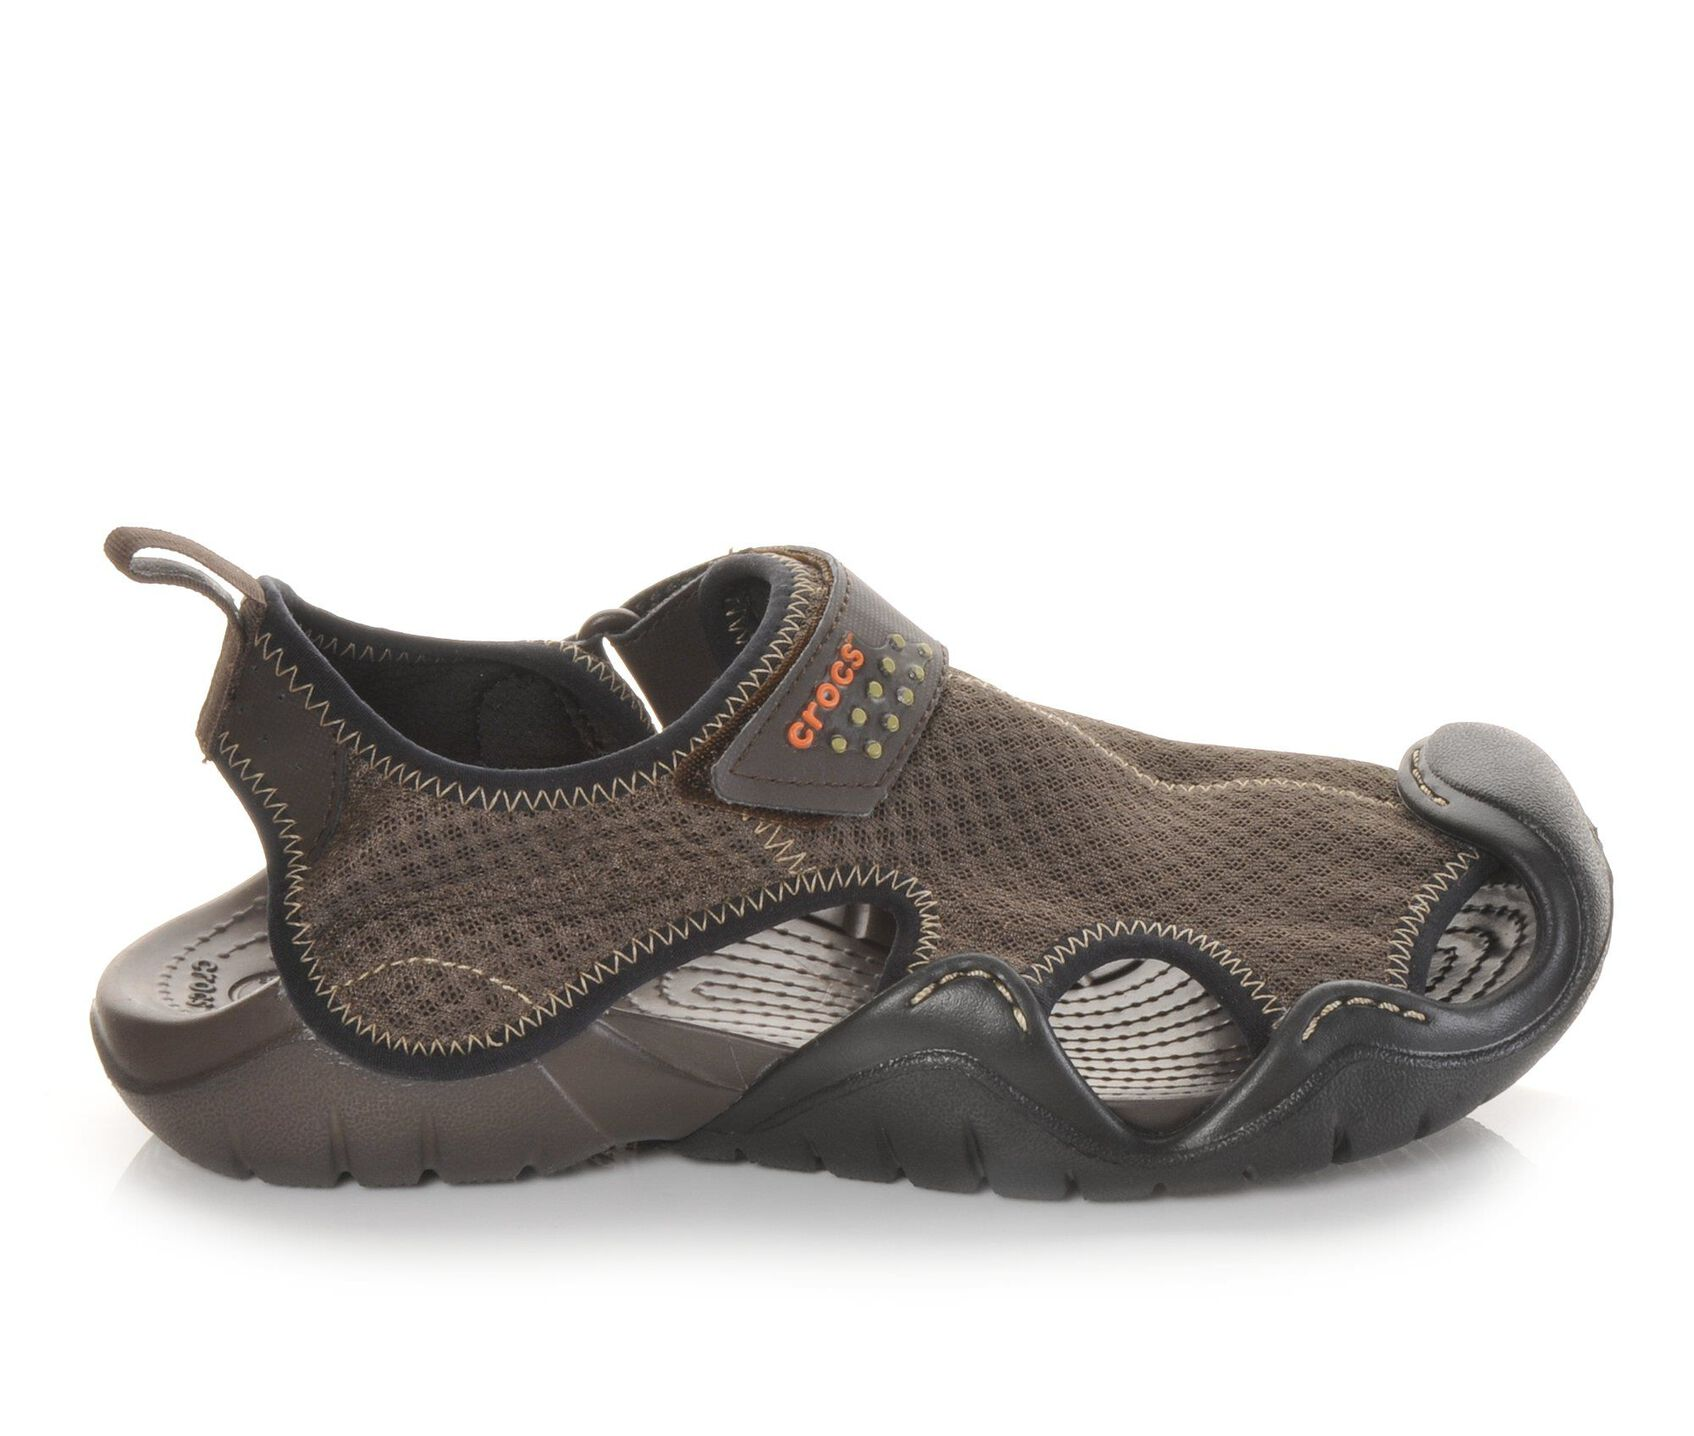 ce7282bd8cd375 ... Crocs Swiftwater Hiking Sandals. Previous